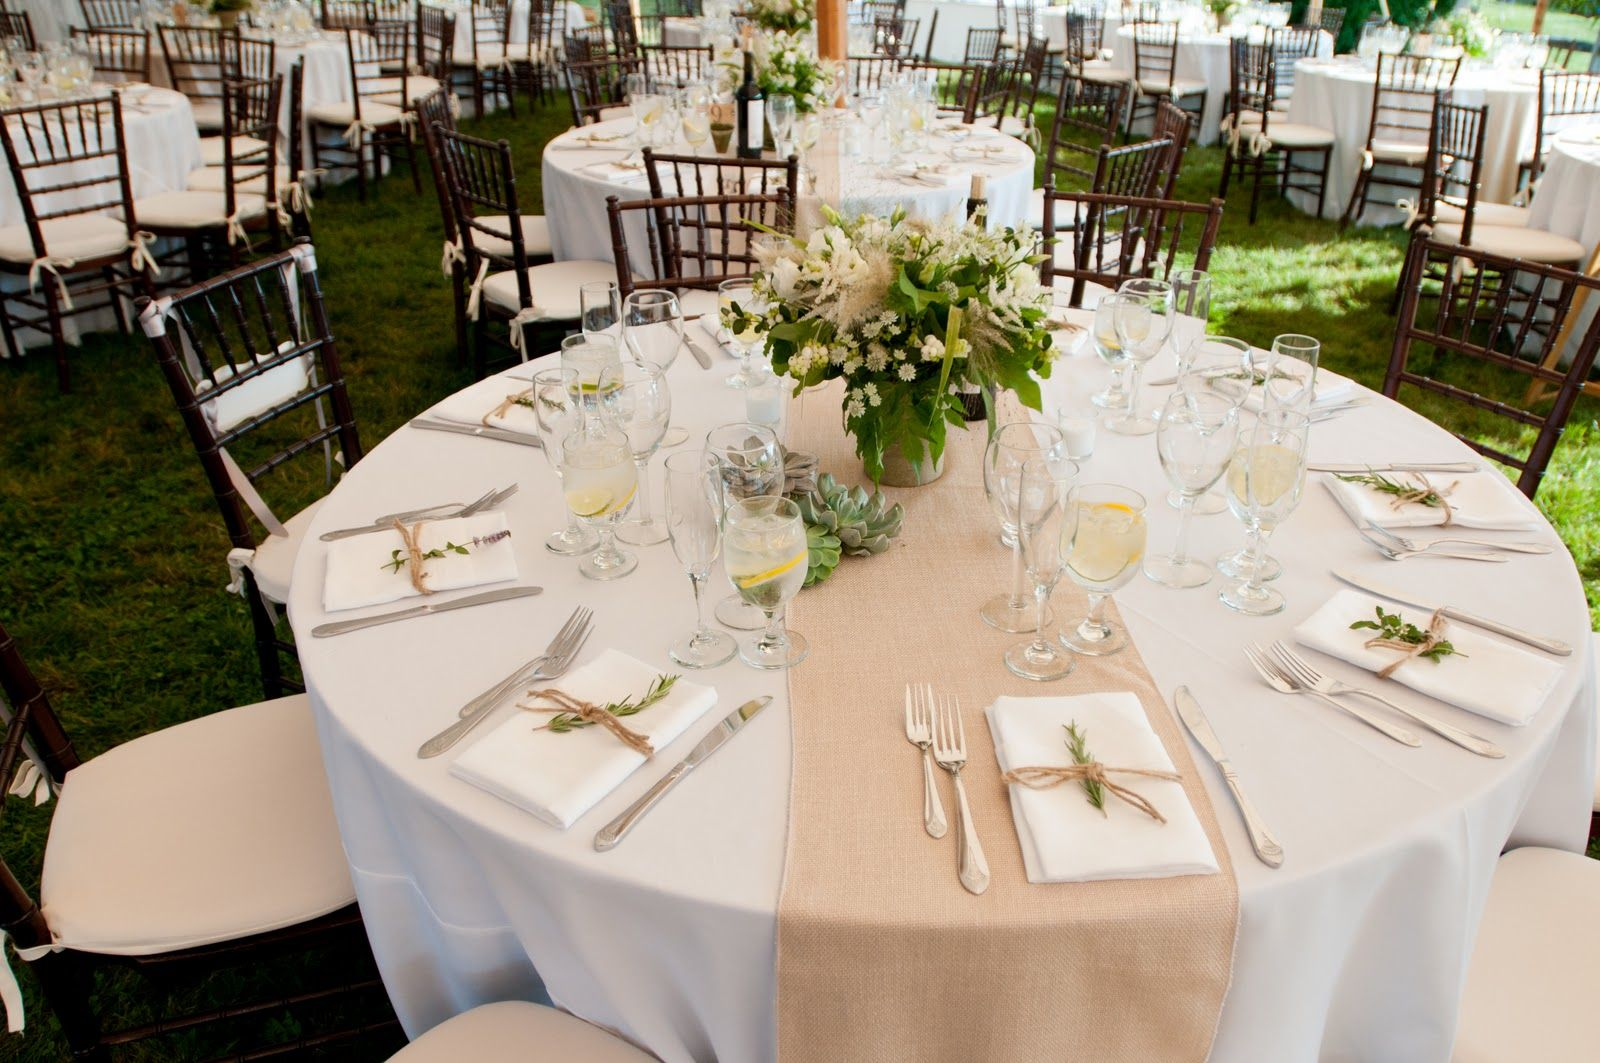 Table runner on round table - 1000 Images About Design Wedding Flowers On Pinterest Metal Buckets Buckets And Flower